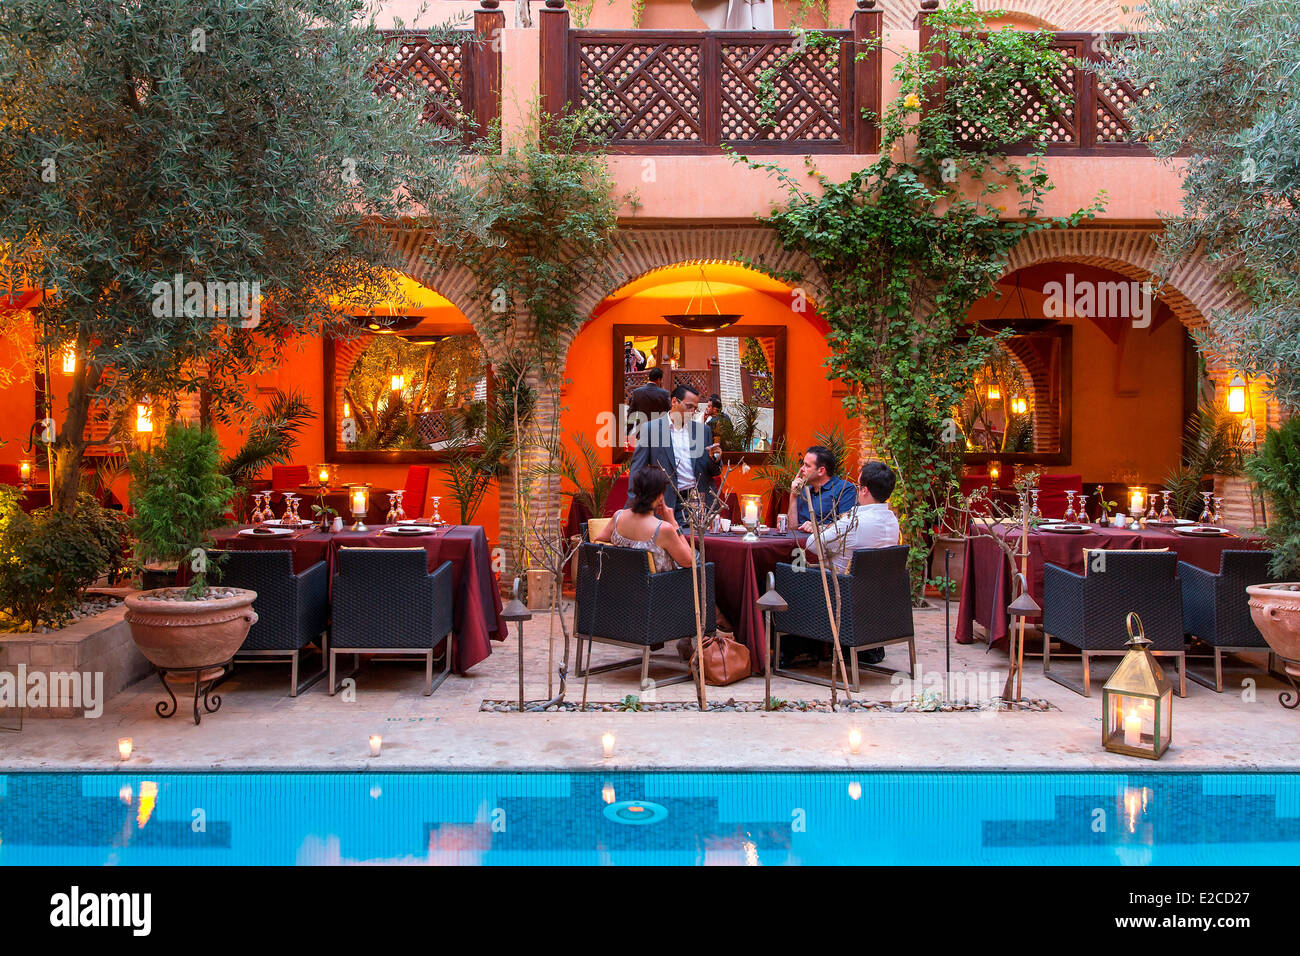 Morocco high atlas marrakesh imperial city restaurant la for A la maison en arabe